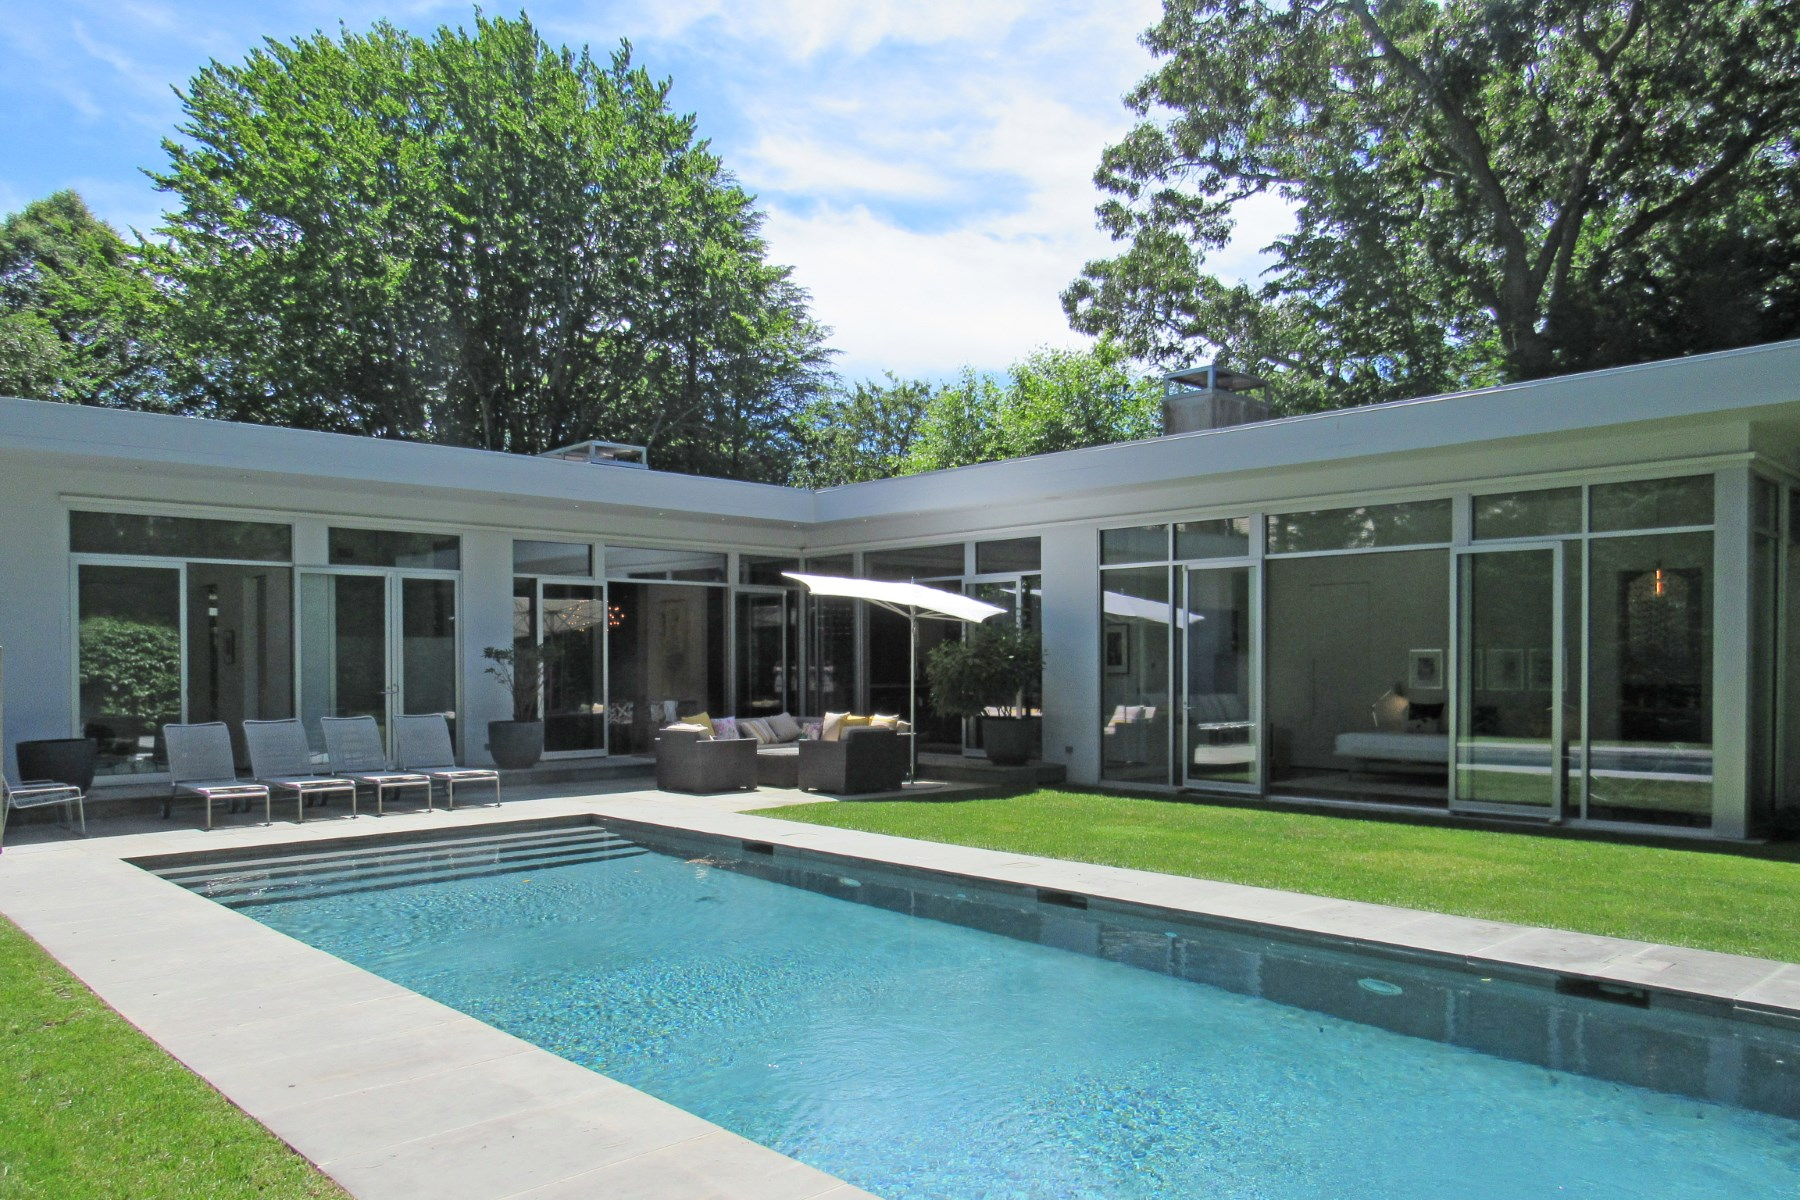 Single Family Home for Sale at Exquisitely Designed Modern 31 Palma Terrace East Hampton Village, East Hampton, New York, 11937 United States